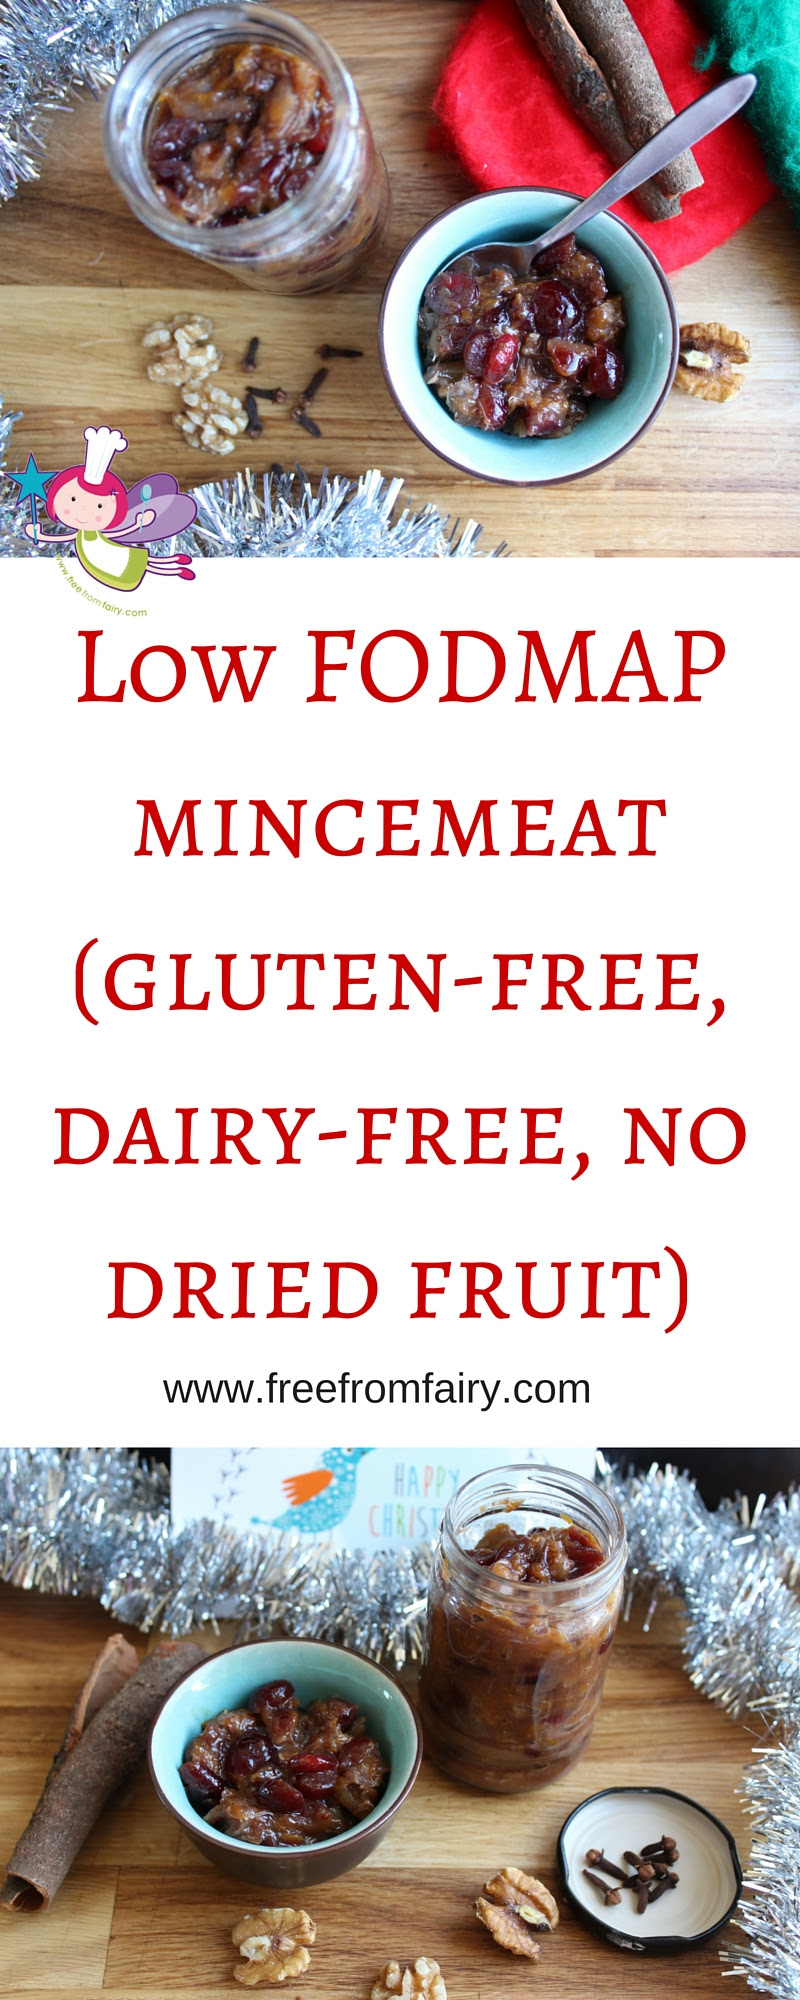 Low FODMAP Mincemeat Recipe For Dried Fruit Haters ...